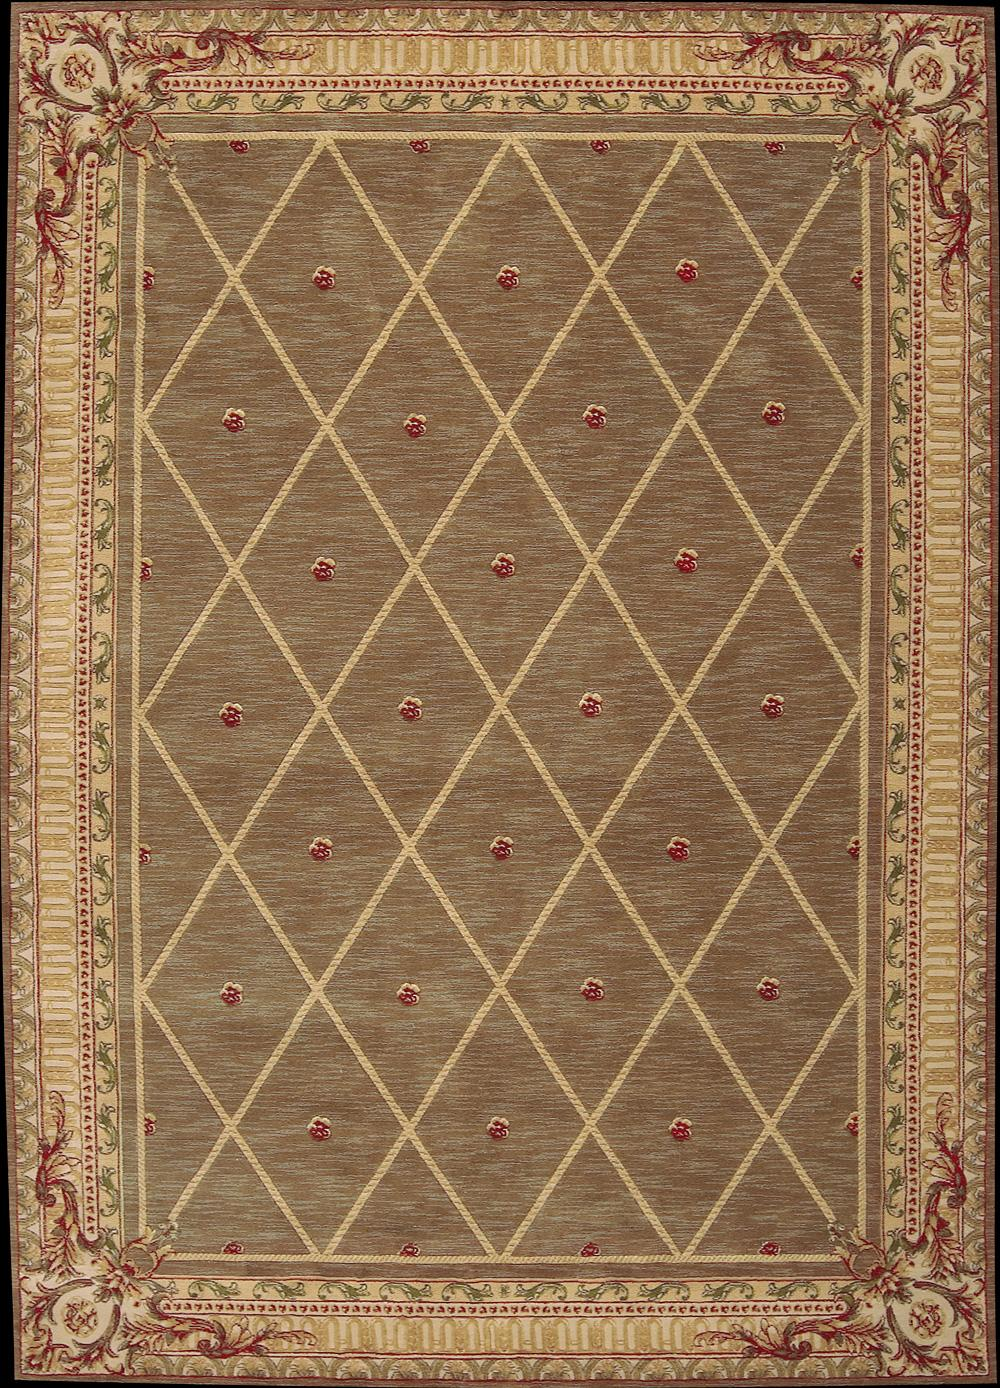 "Nourison Ashton House Area Rug 5'6"" x 7'5"" - Item Number: 32146"